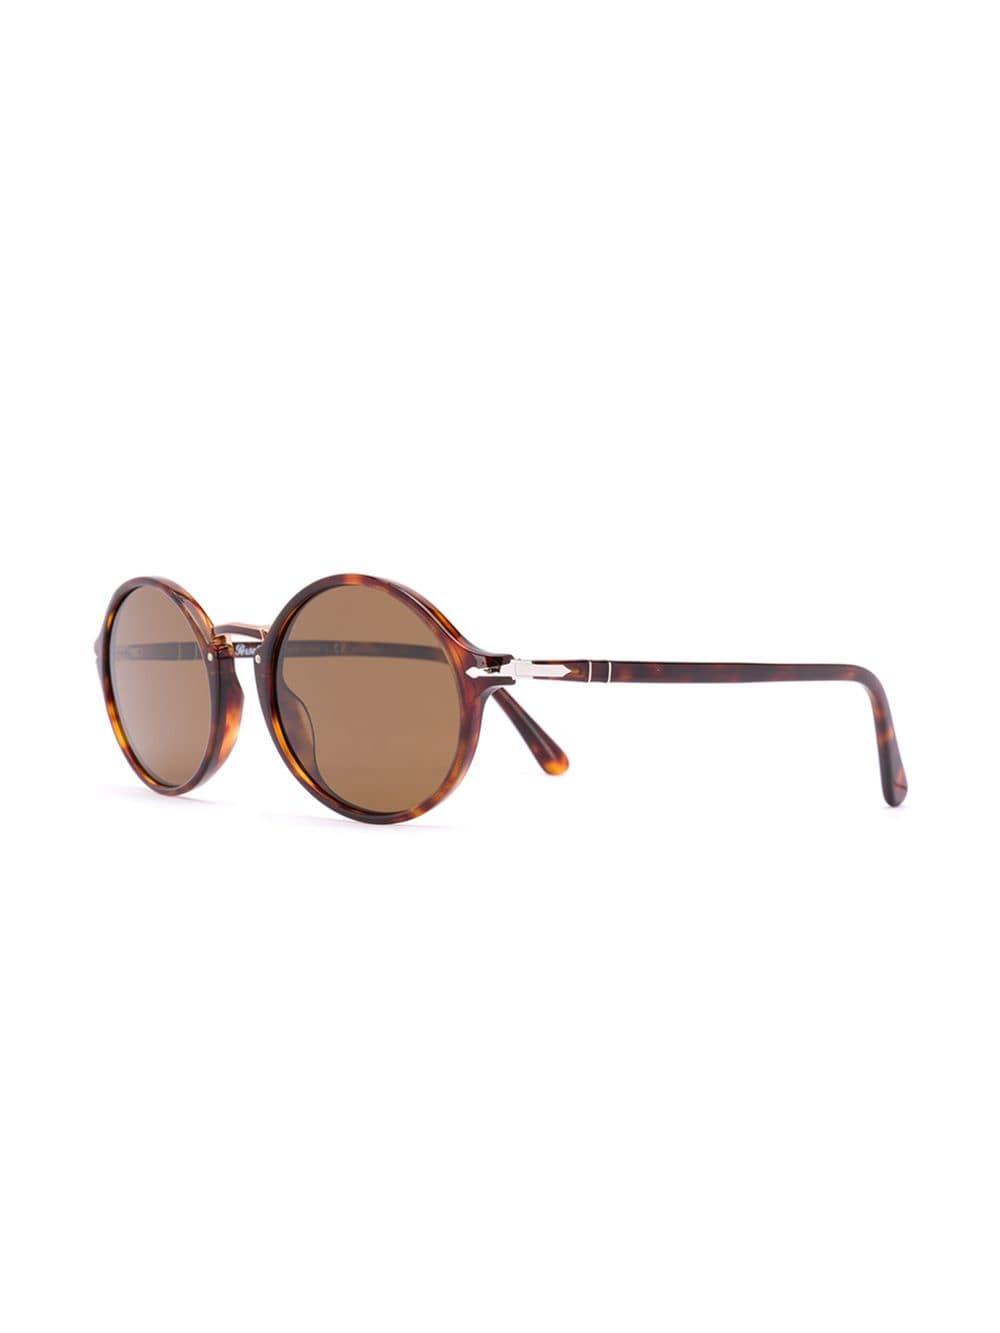 084571474c69d Lyst - Persol Oval Frame Sunglasses in Brown